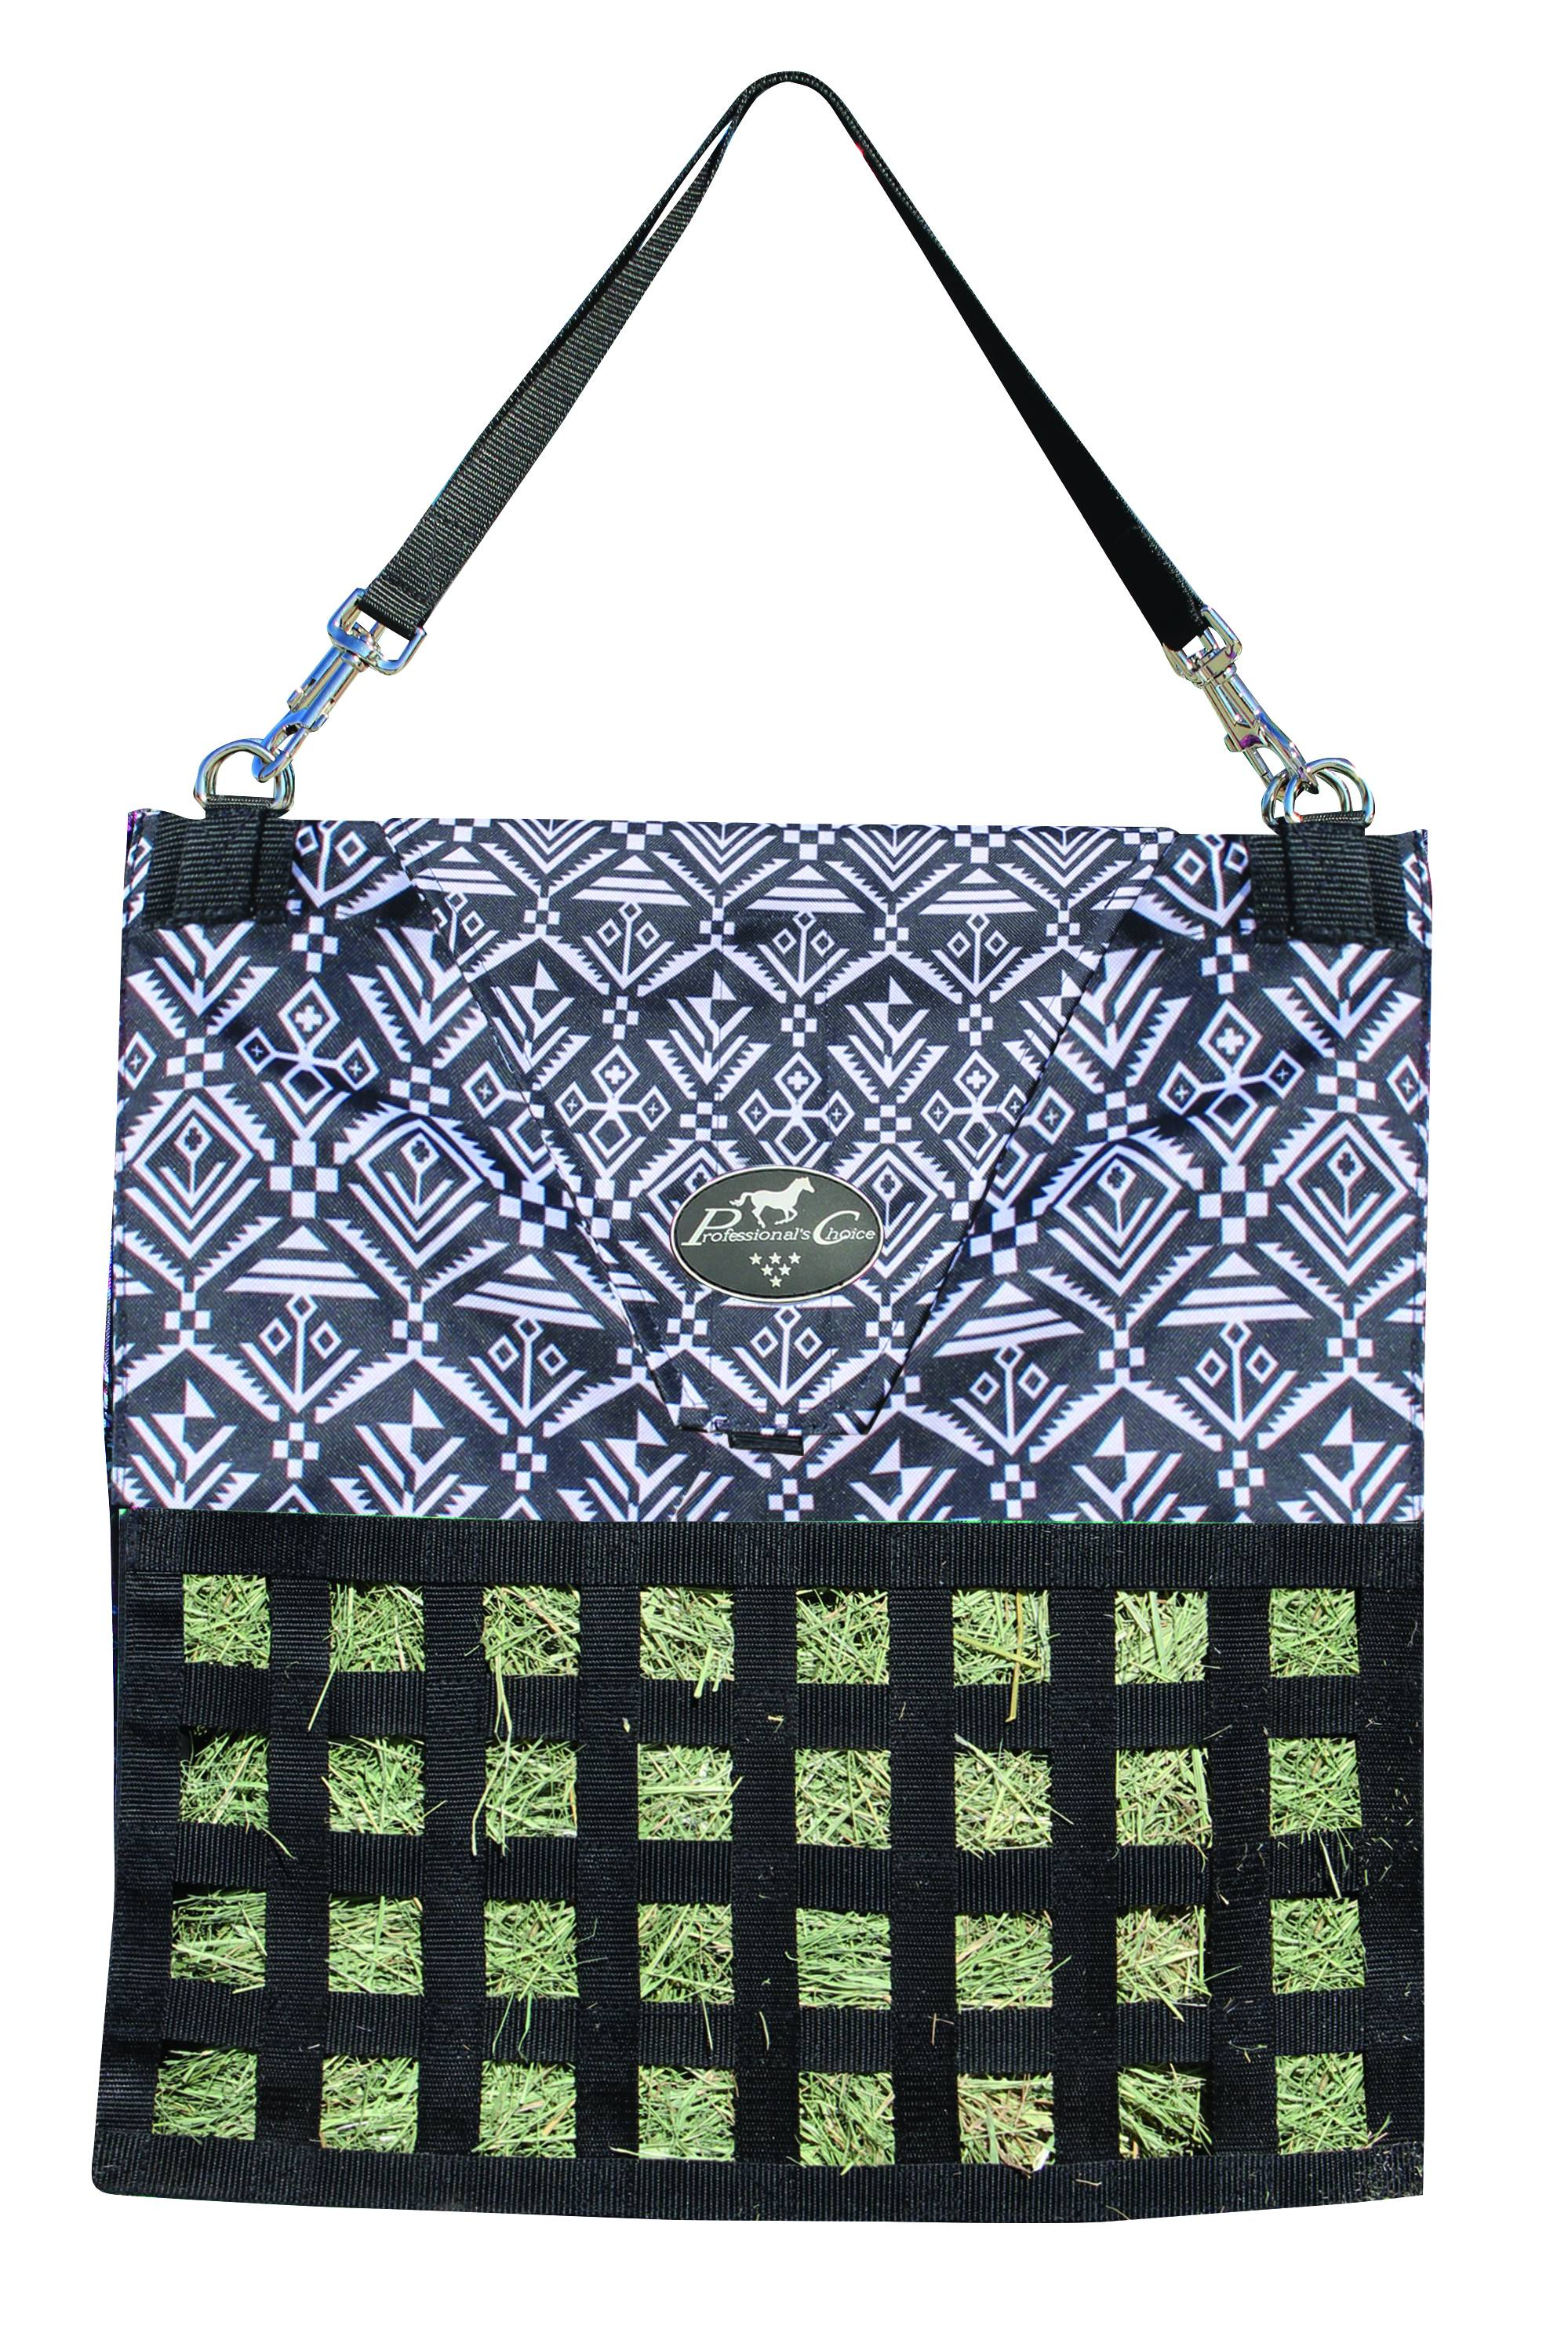 Professionals Choice Slow Feed Hay Bag - Aztec